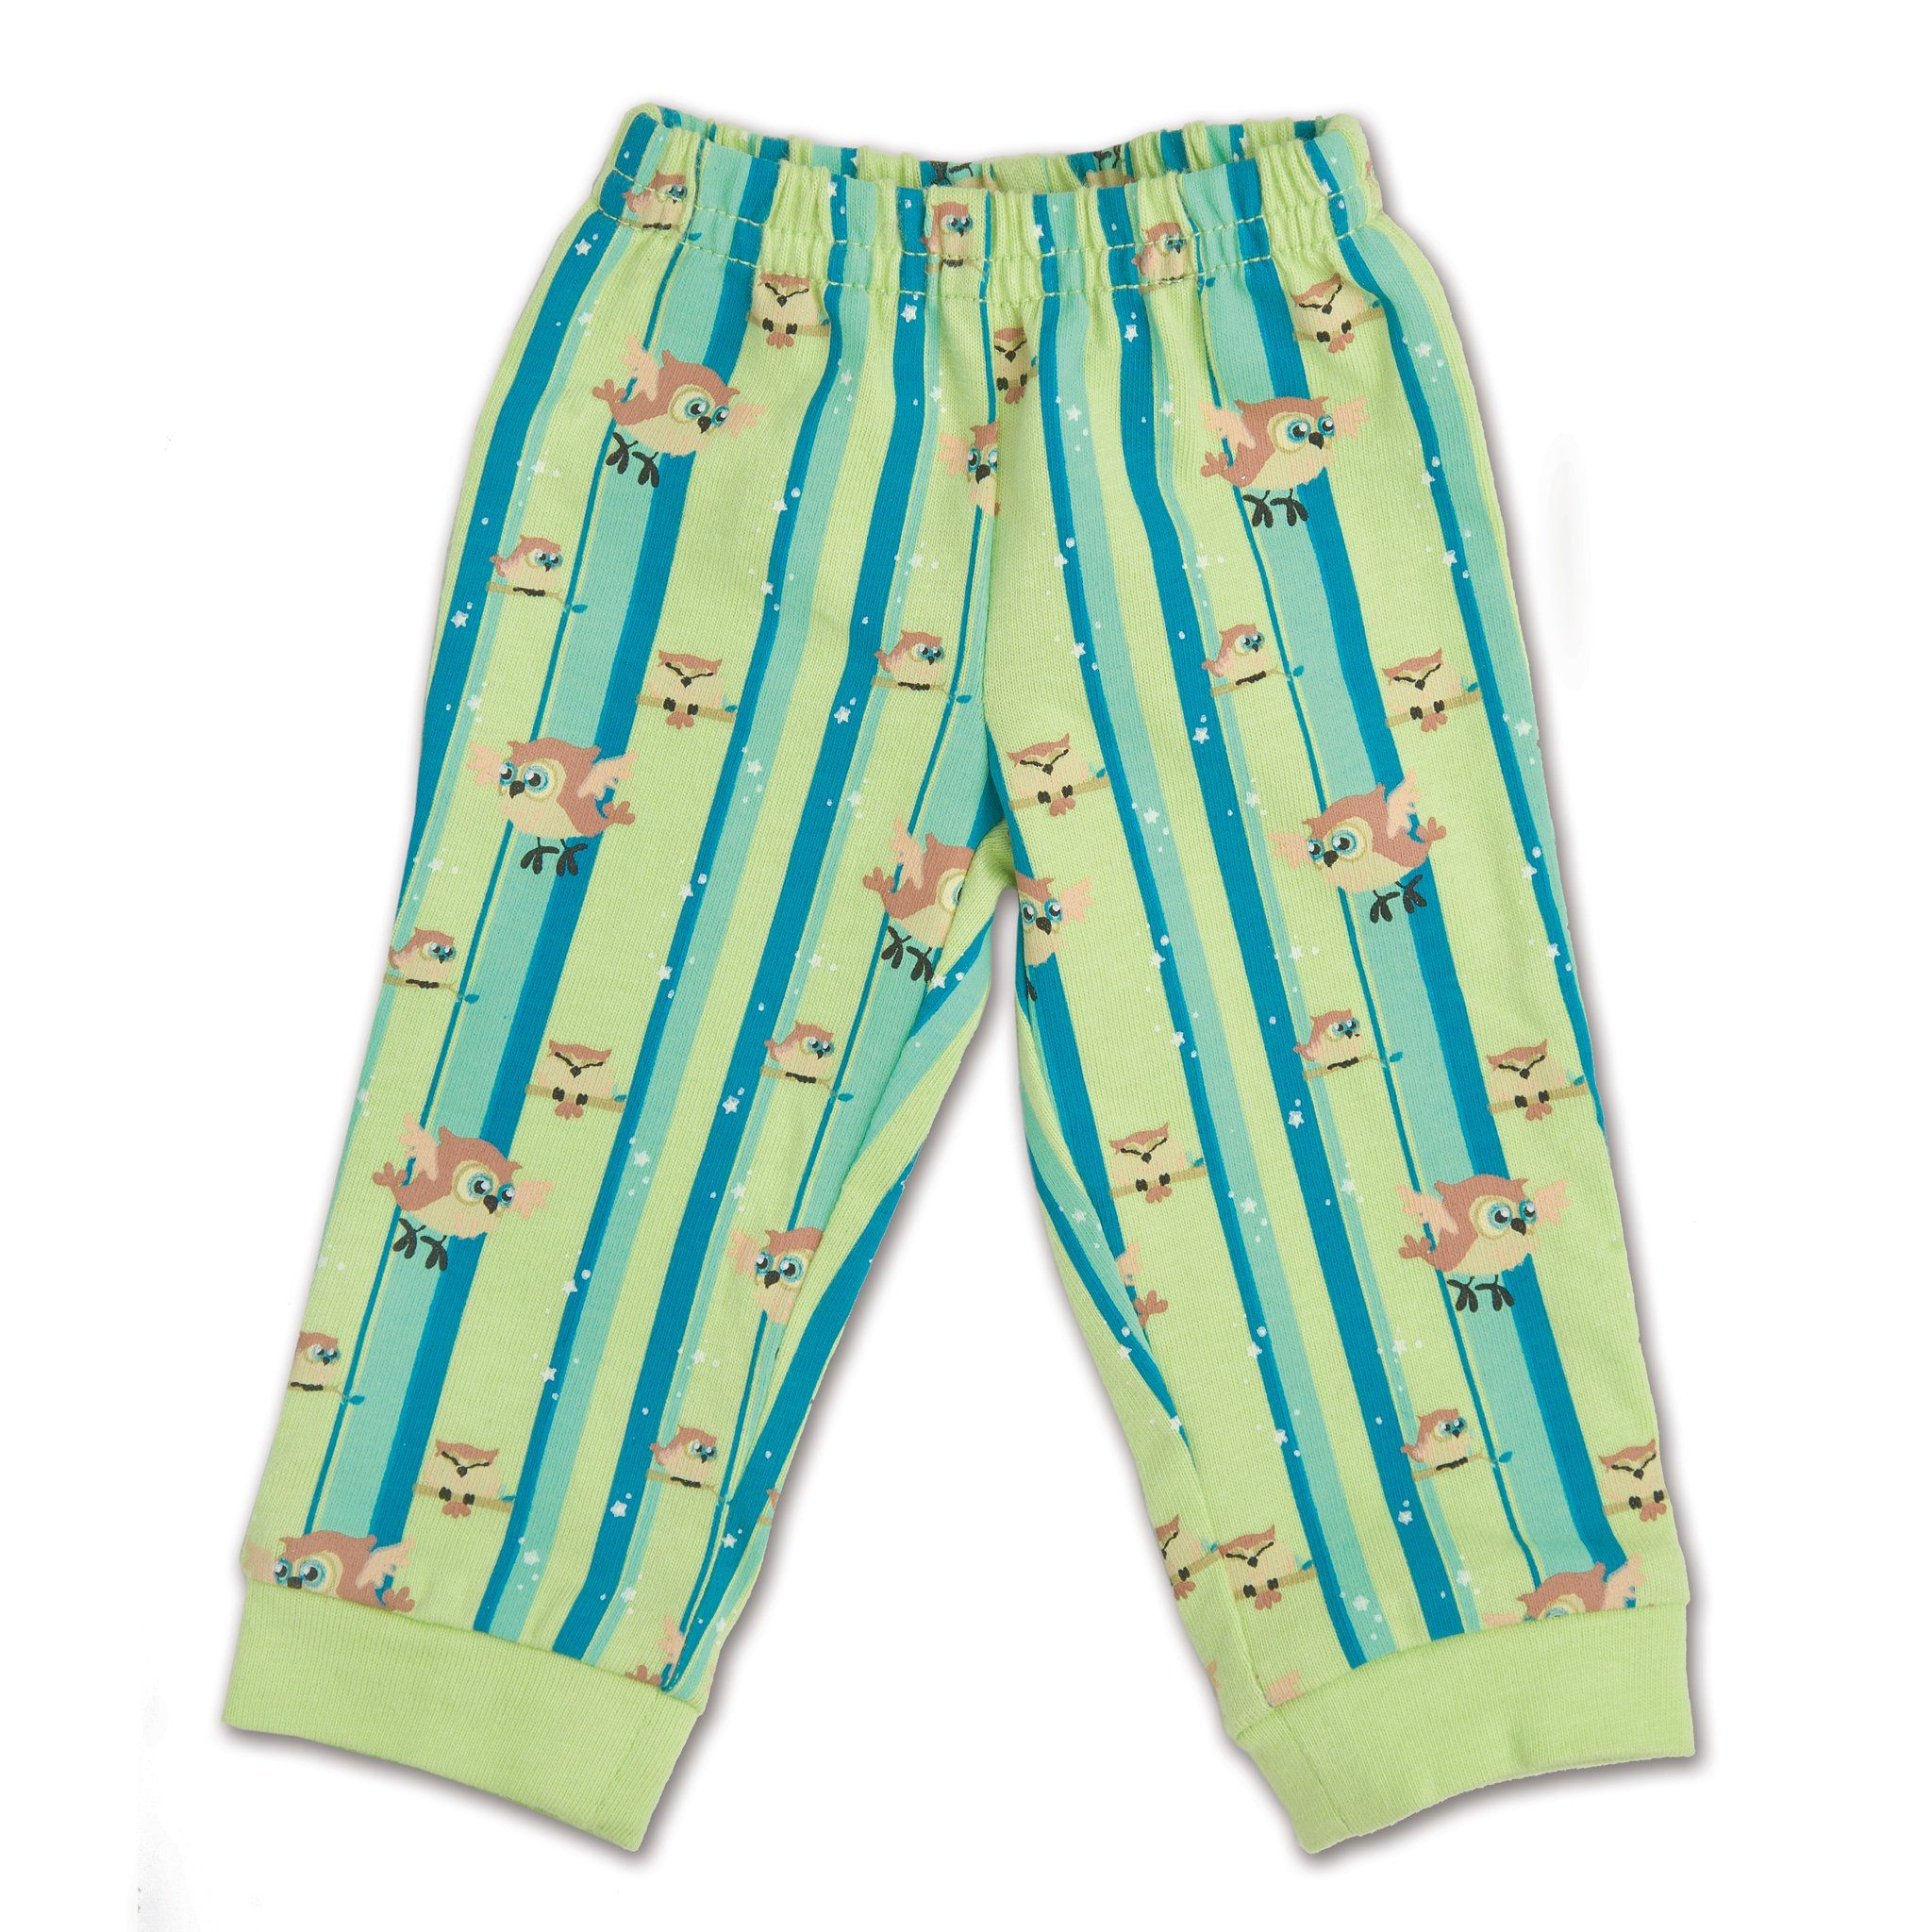 Night Owl Nightwear green and blue striped PJ pants fit all 18 inch dolls.